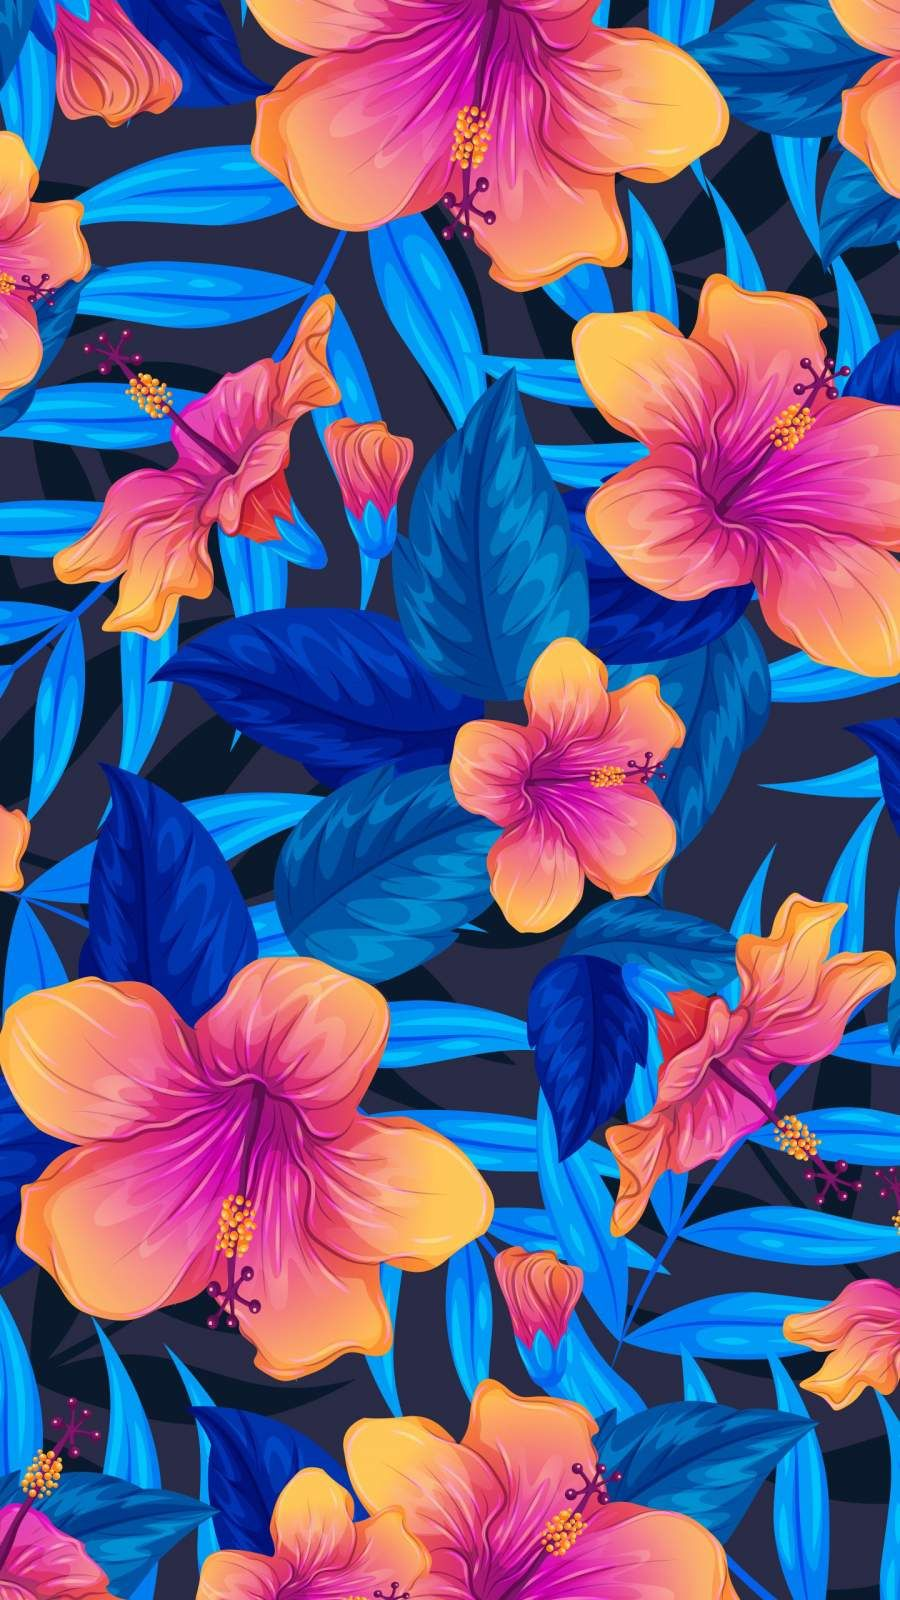 List of Cool Wallpaper for iPhone XS /XS Max 2019